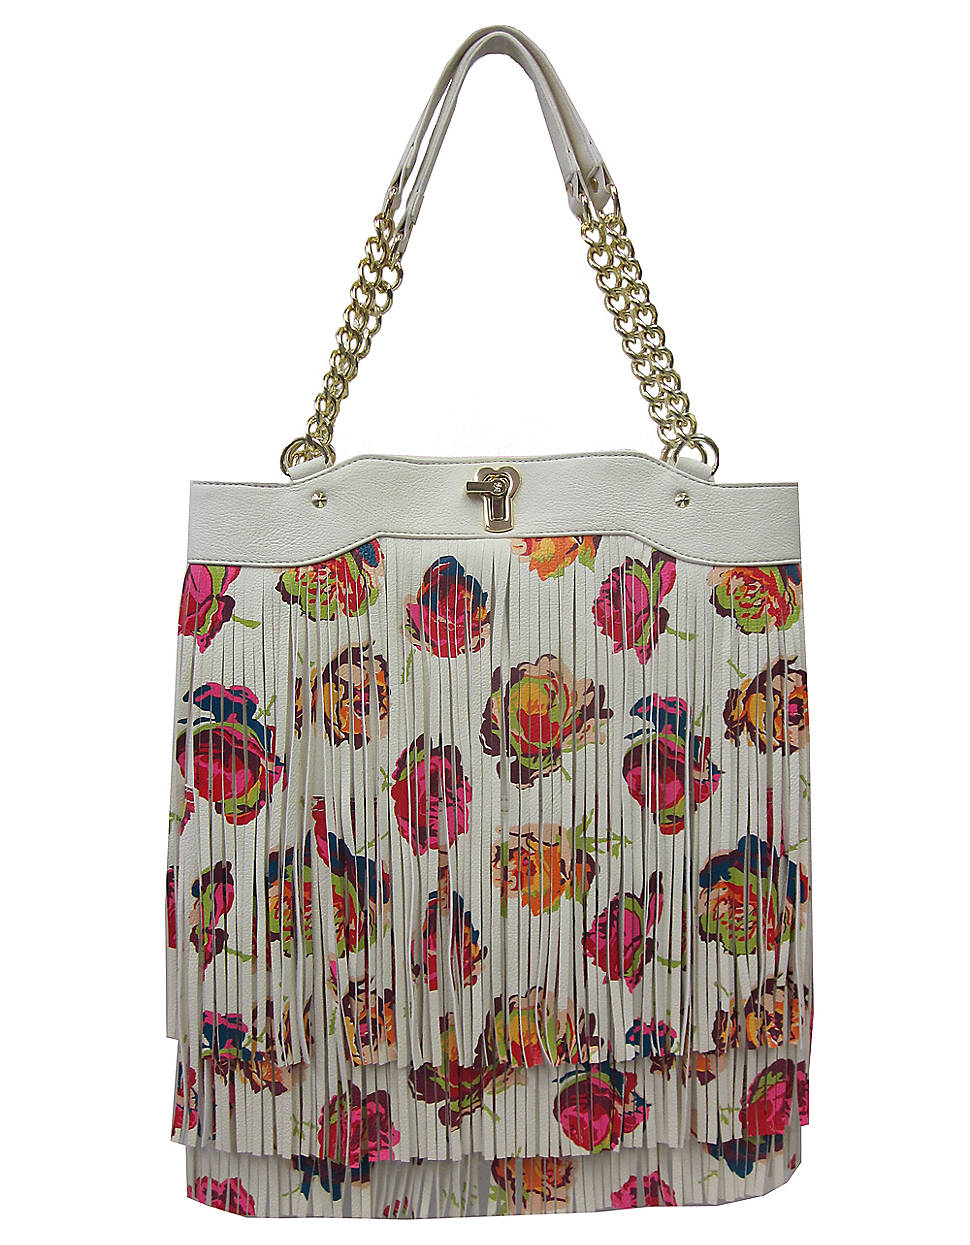 Betsey Johnson Fringy Floral Tote Bag In Gray (cream) | Lyst